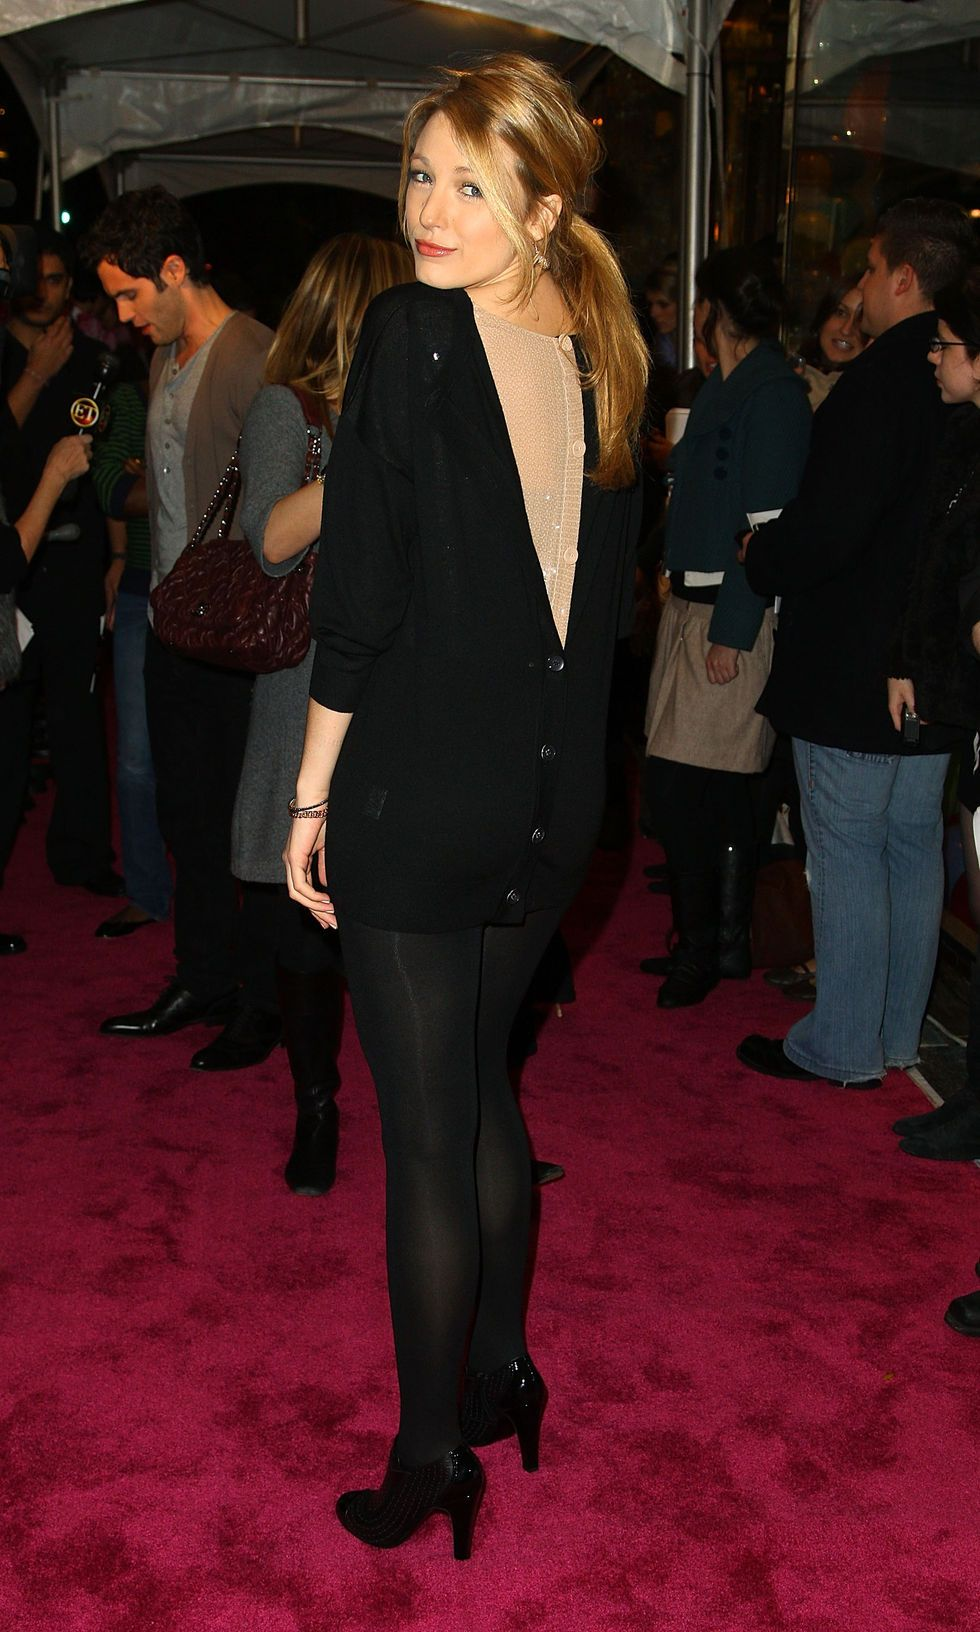 blake-lively-juicy-coutures-5th-avenue-flagship-store-opening-party-in-new-york-city-03